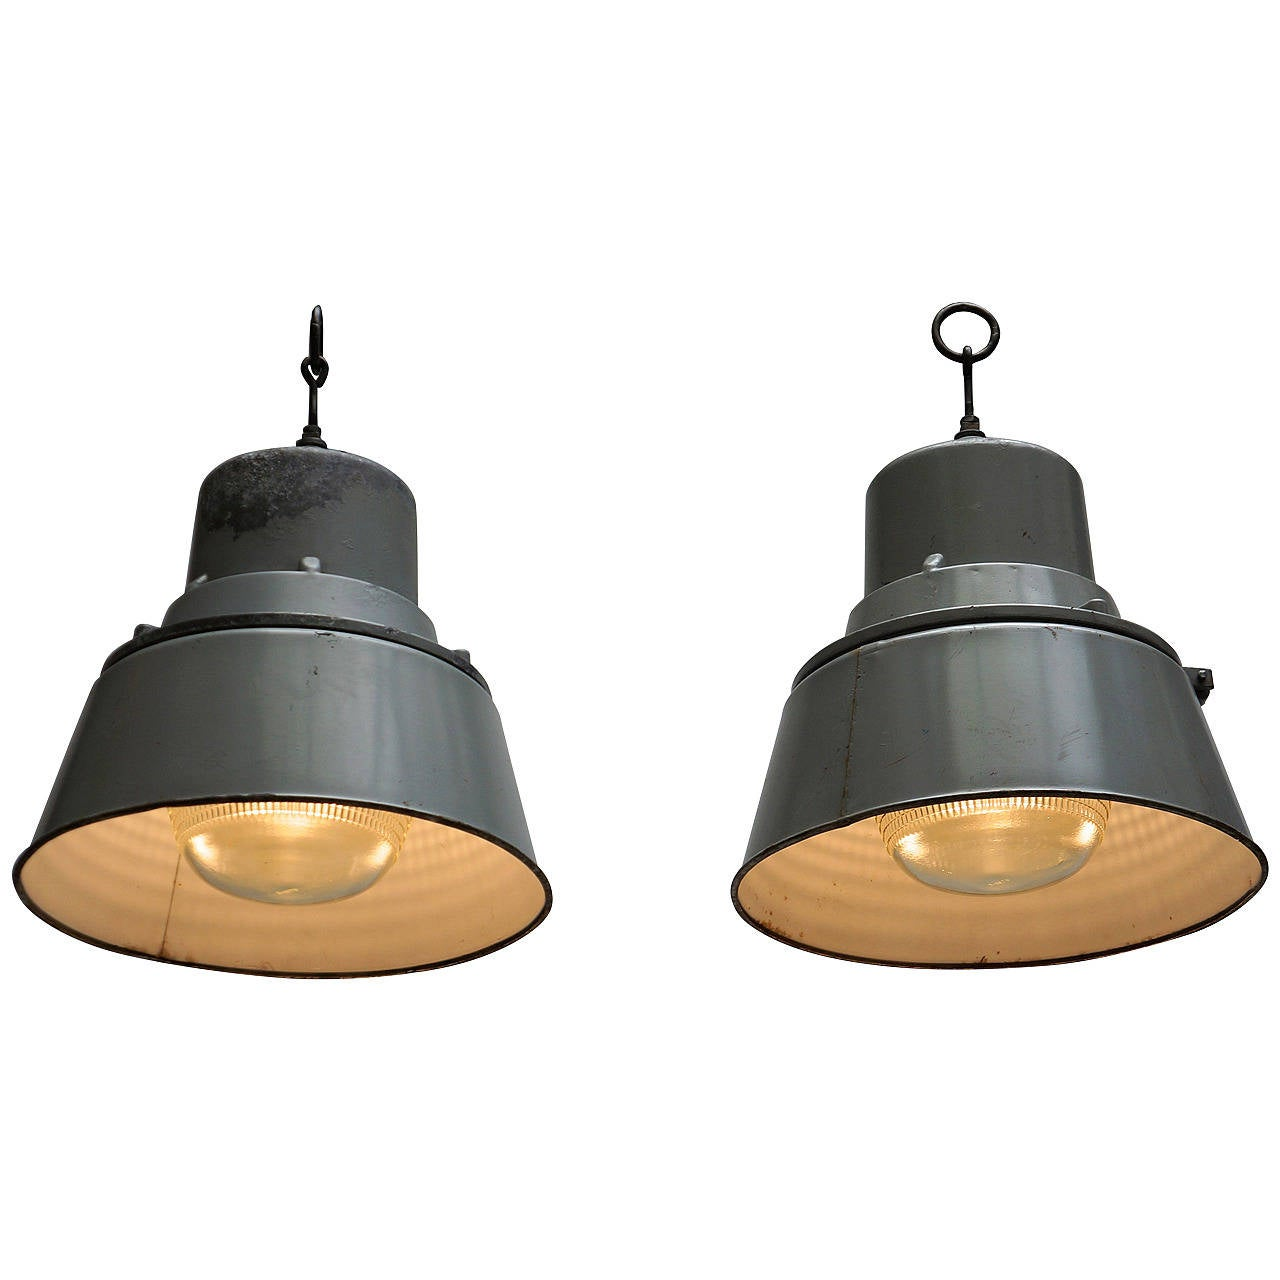 Two Industrial Ceiling Lights